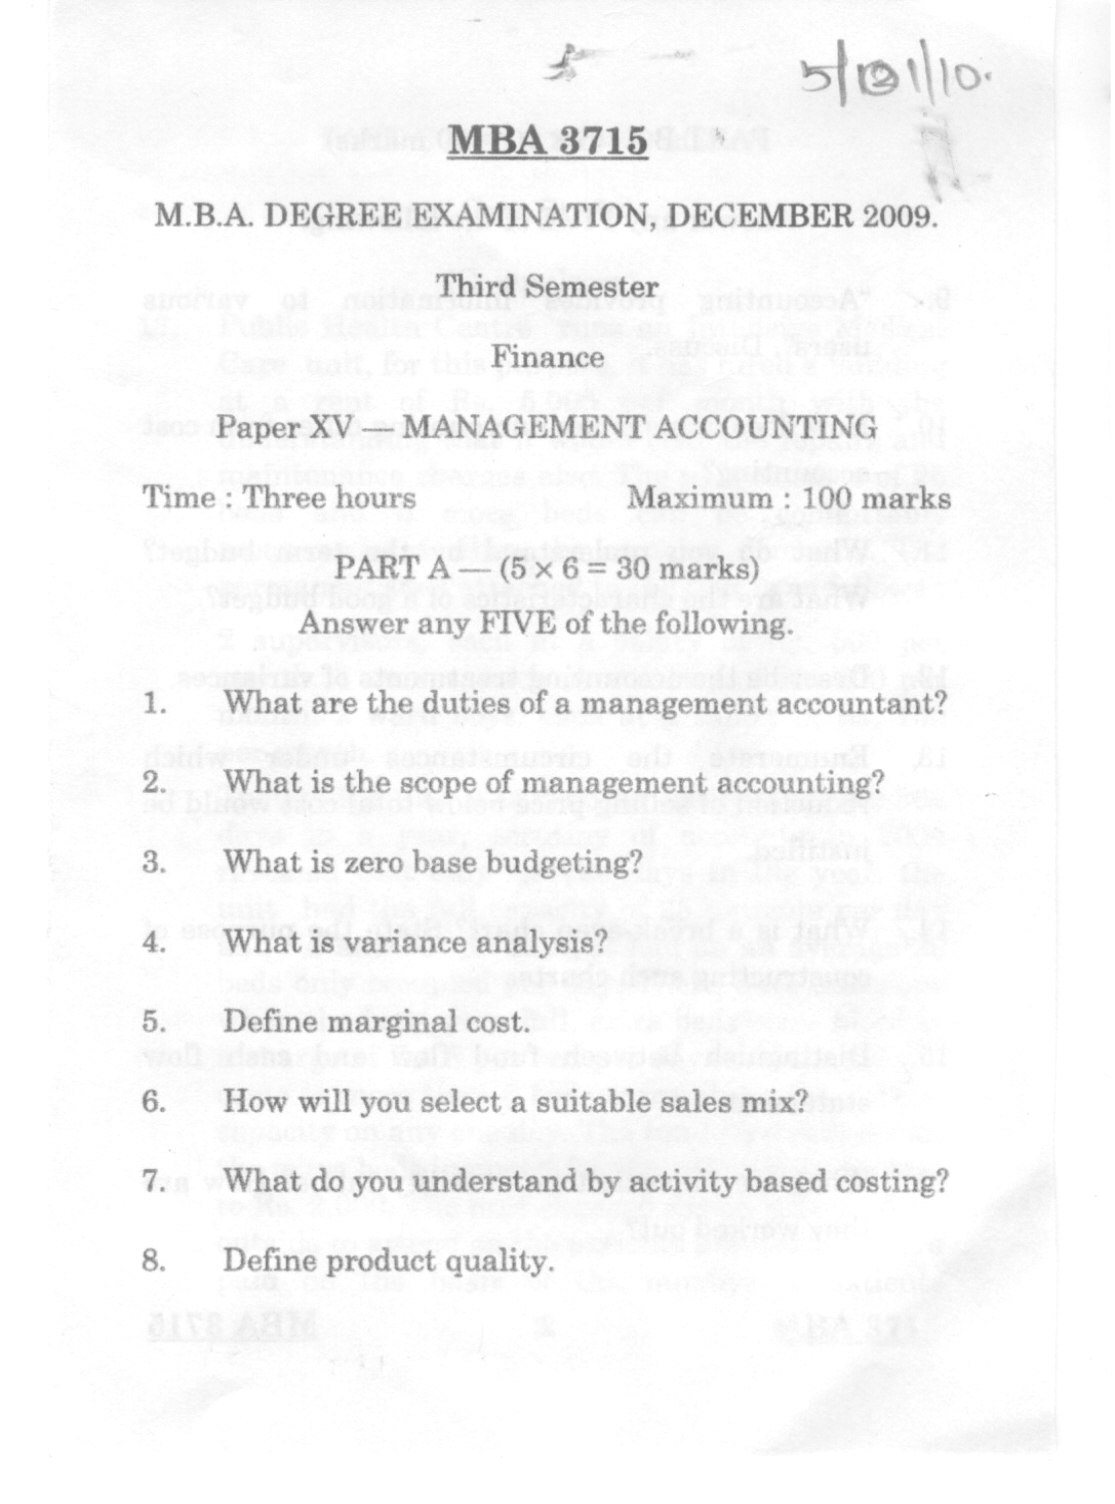 mba finance case essay If you are applying to both the mba and msx programs, use essay b to address your interest in both programs length your answers for both essay questions combined may not exceed 1,150 words (1,200 words if you are applying to both the mba and msx programs.